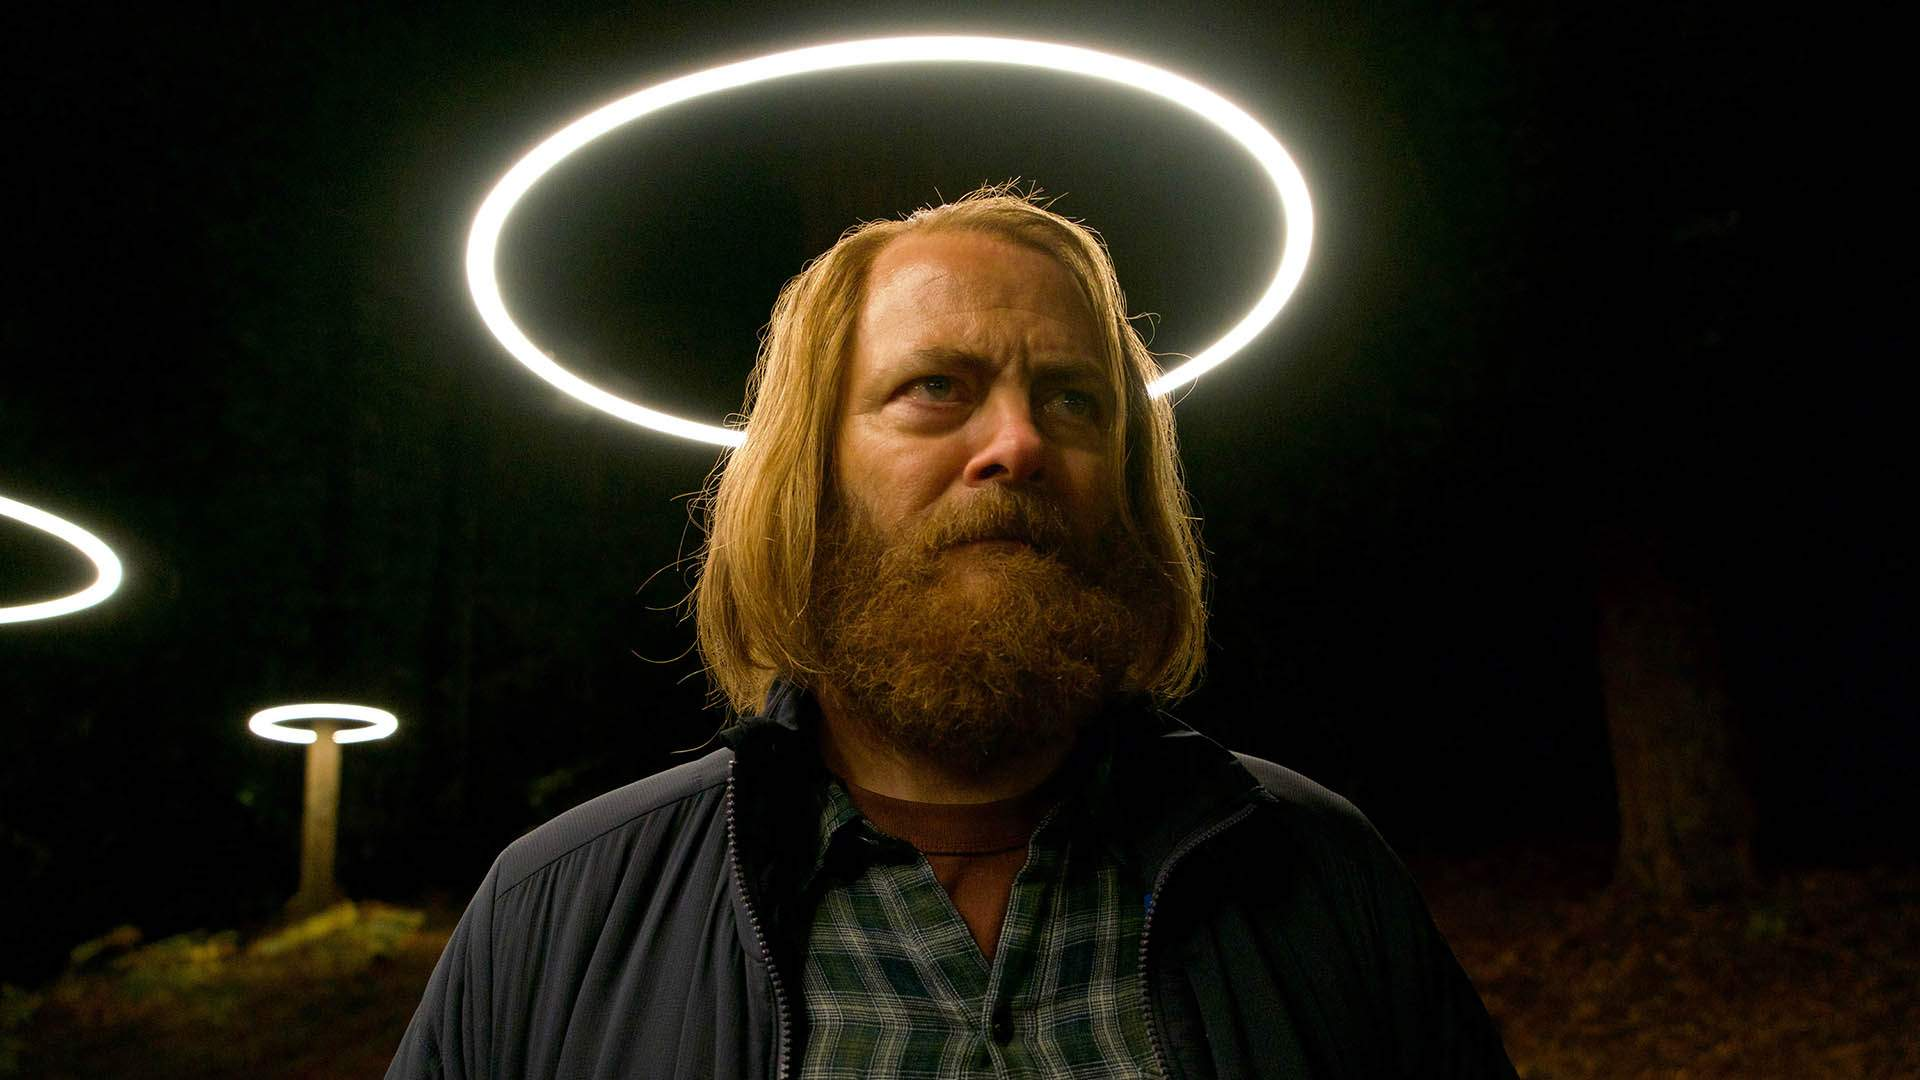 The Trailer for New Sci-Fi Series 'Devs' Delivers Futuristic Thrills and a Long-Haired Nick Offerman